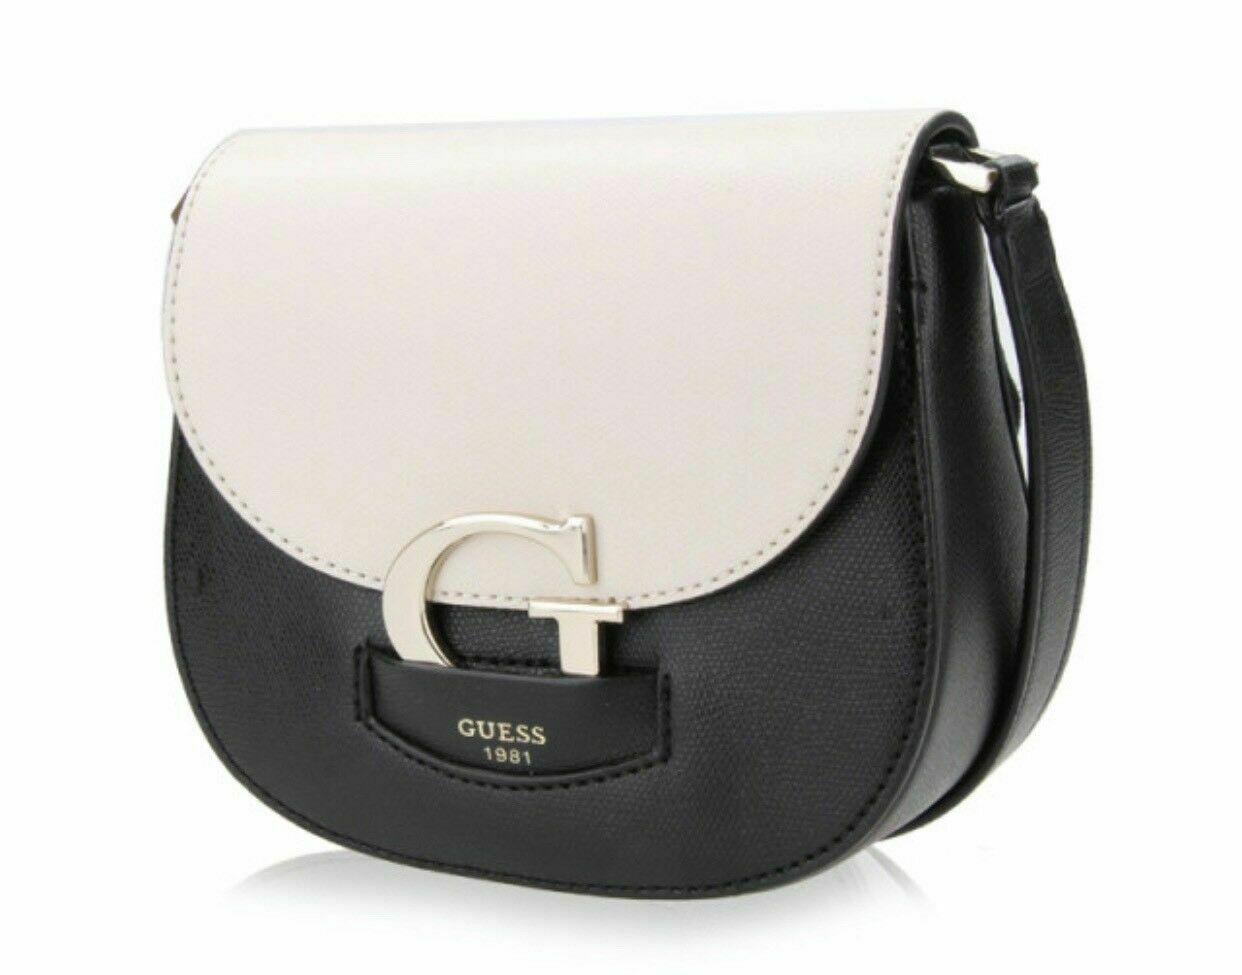 Guess NWT Stone Black Shoulder Hand Bag Lexxi Magnetic Flap Pebbled Gold image 3